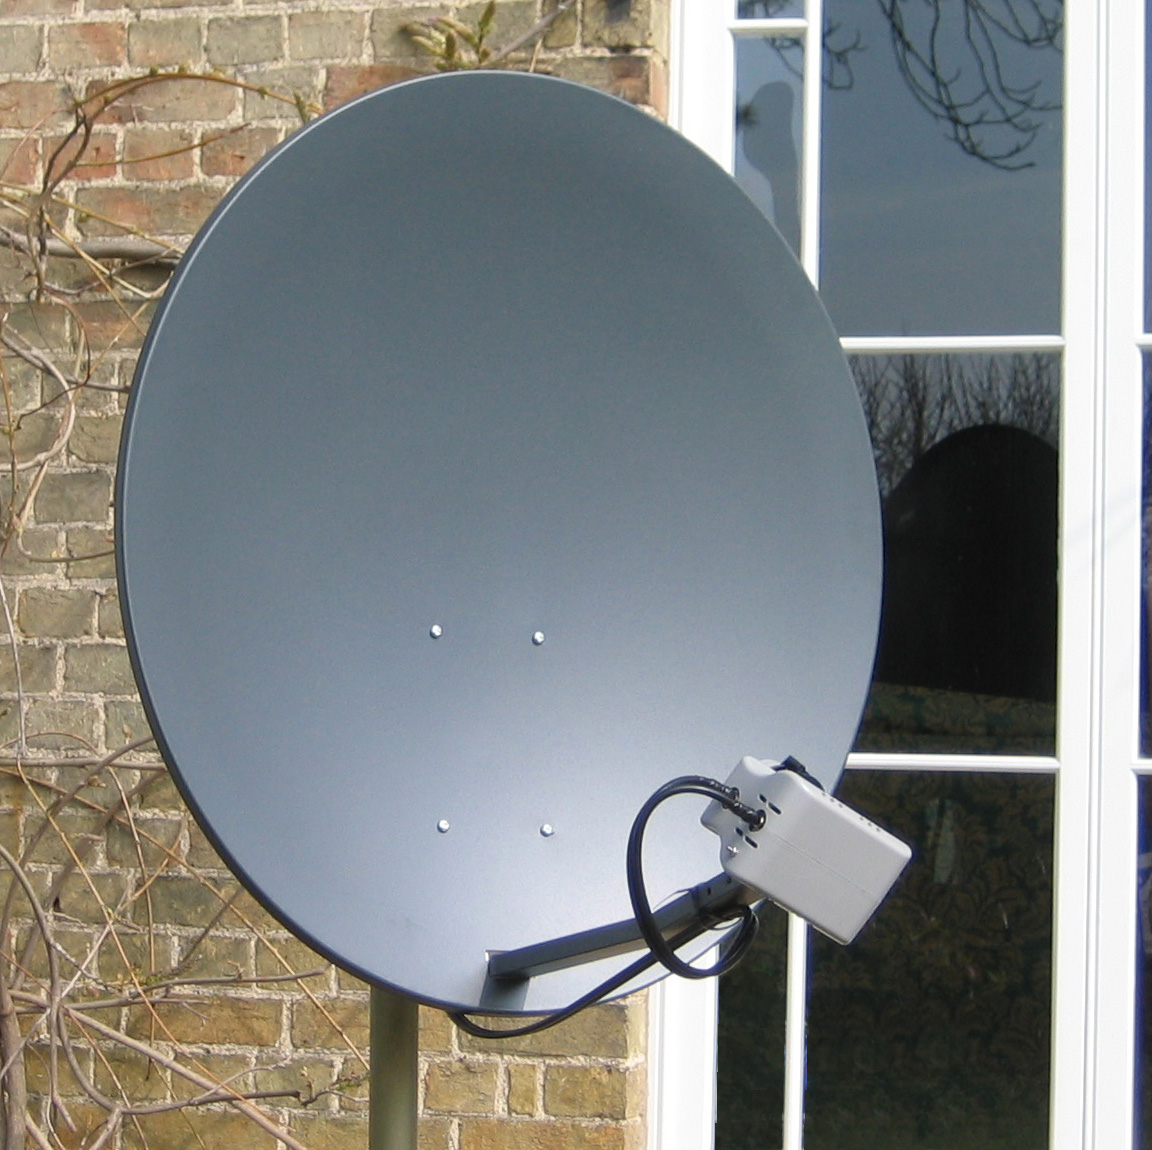 Ses broadband wikiwand for Where can i find mirrors